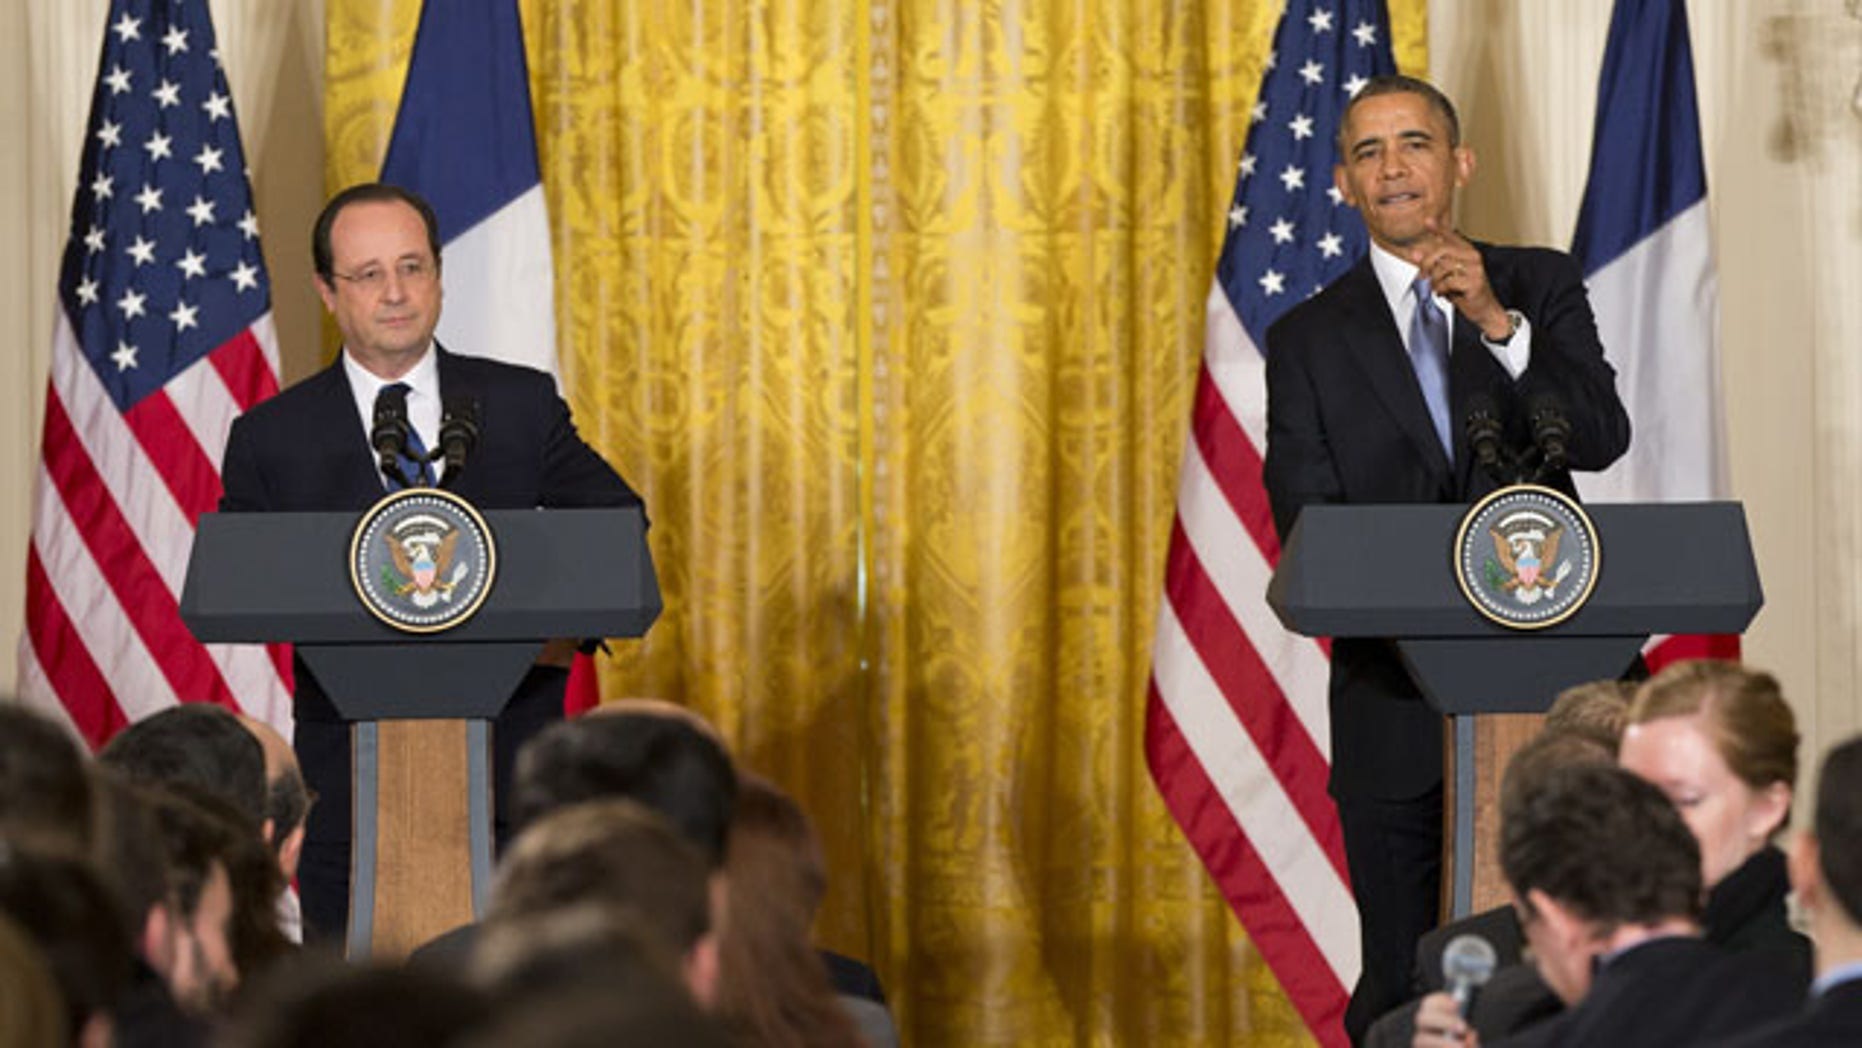 February 11, 2014: President Barack Obama calls on a reporter during a joint news conference with French President François Hollande, as part of an official state visit in the East Room of the White House in Washington. (AP)